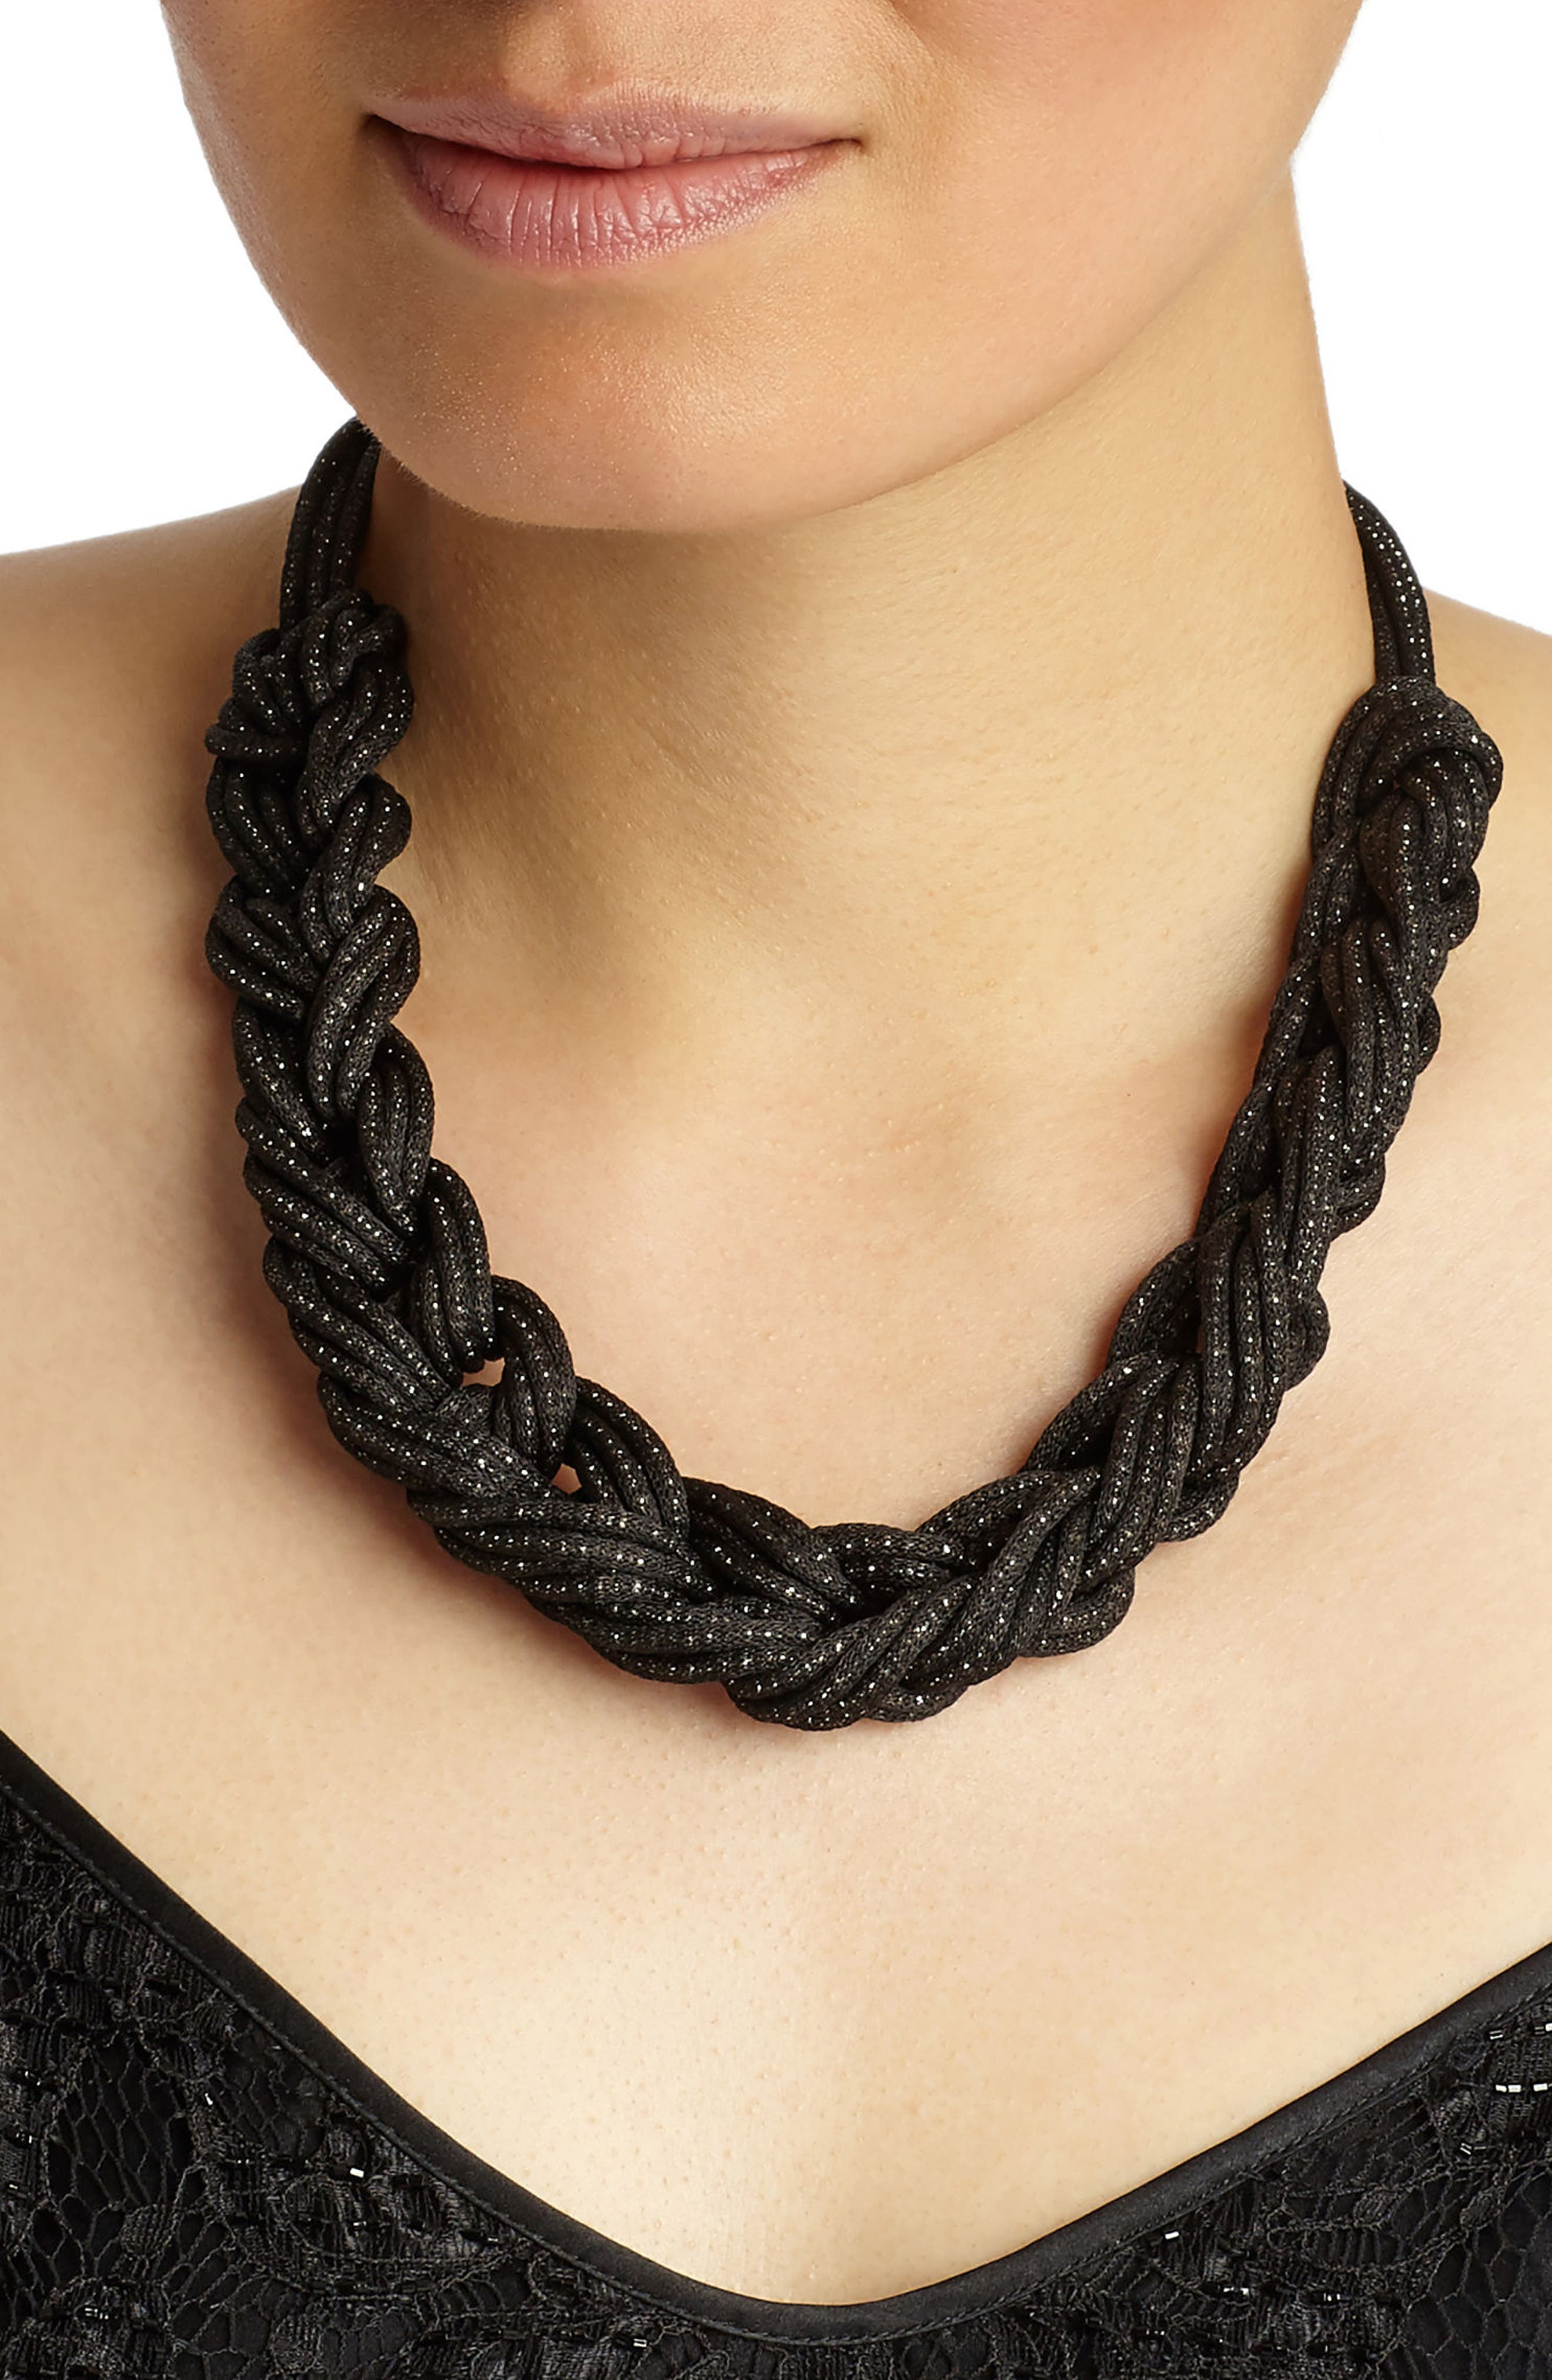 Braided Mesh Necklace,                             Alternate thumbnail 3, color,                             001